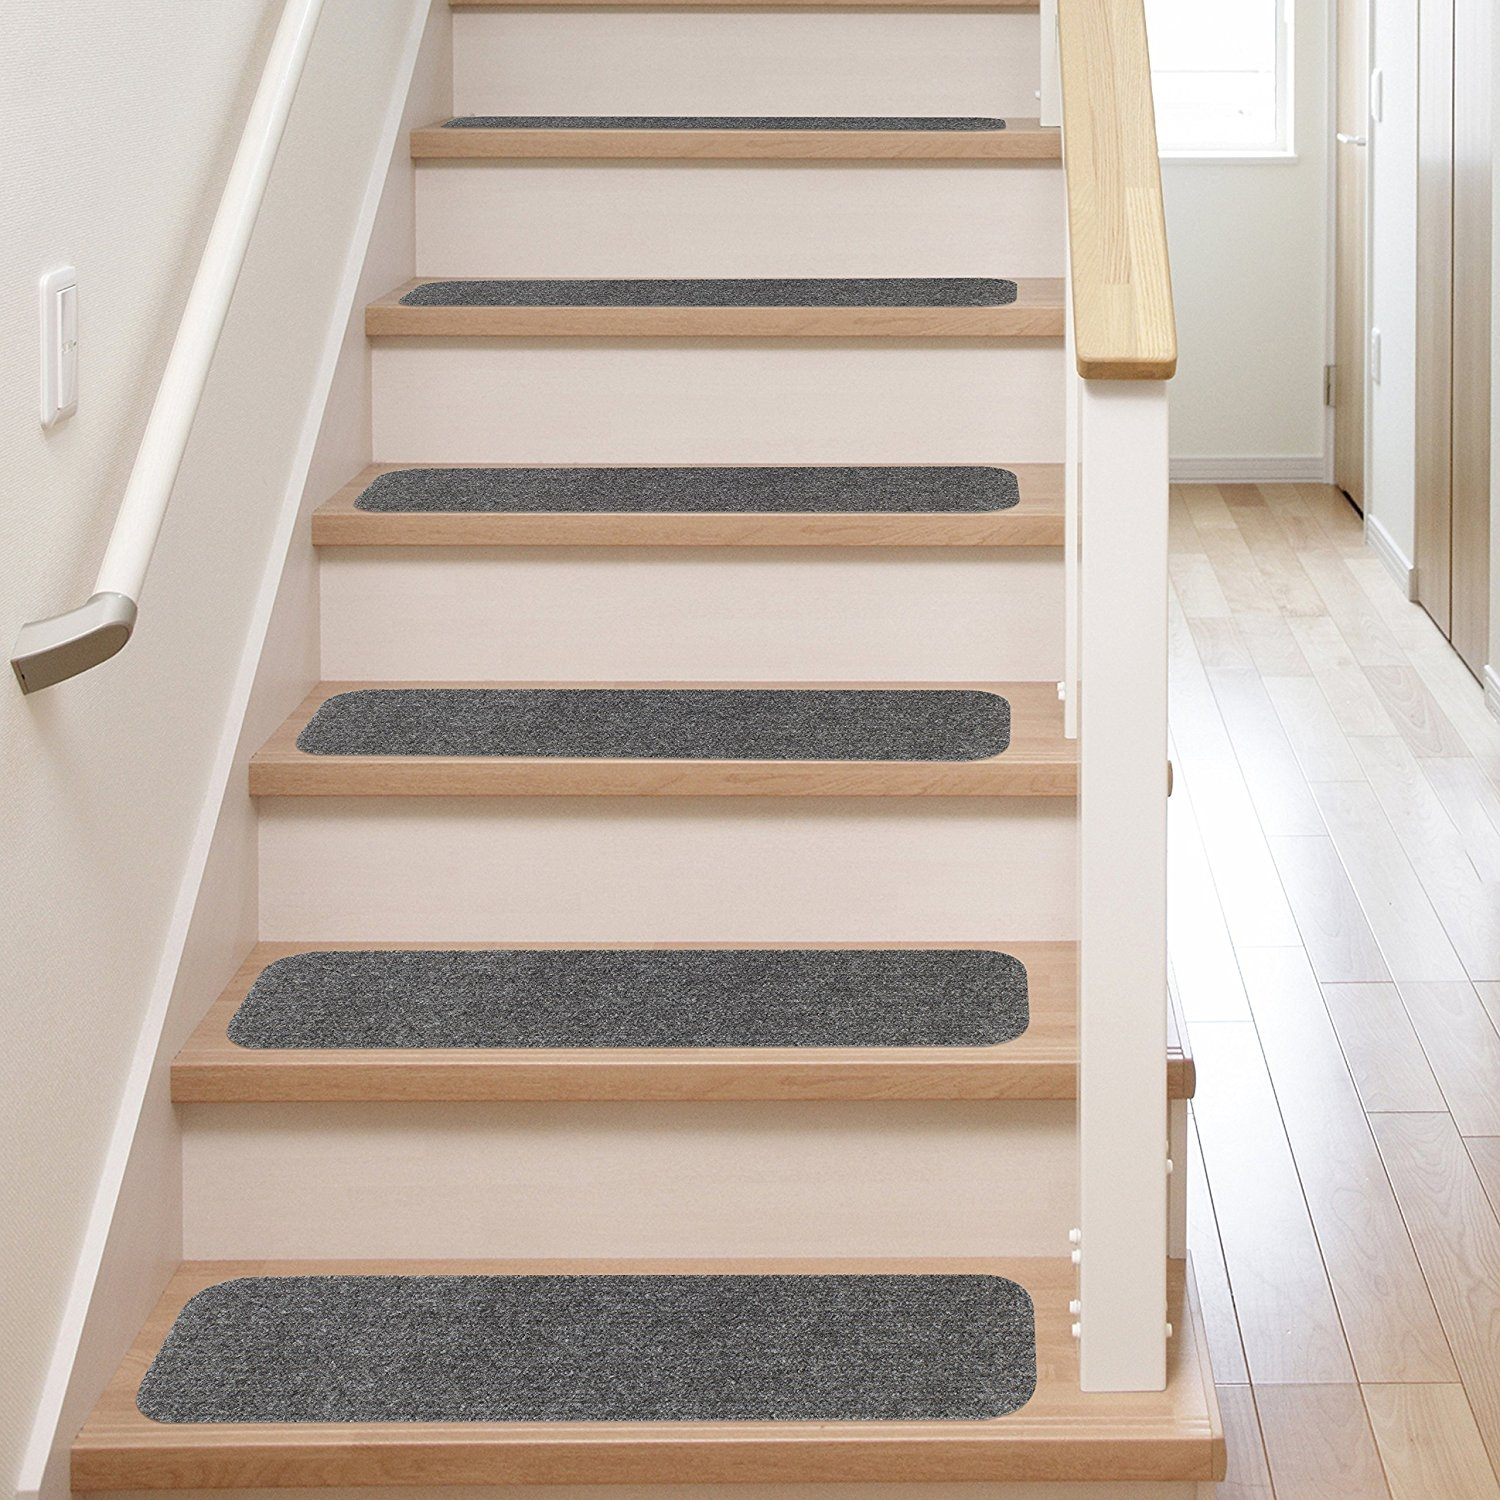 13 Stair Treads Non Slip Carpet Pads Easy Tape Installation Within Skid Resistant Stair Treads (Image 1 of 15)